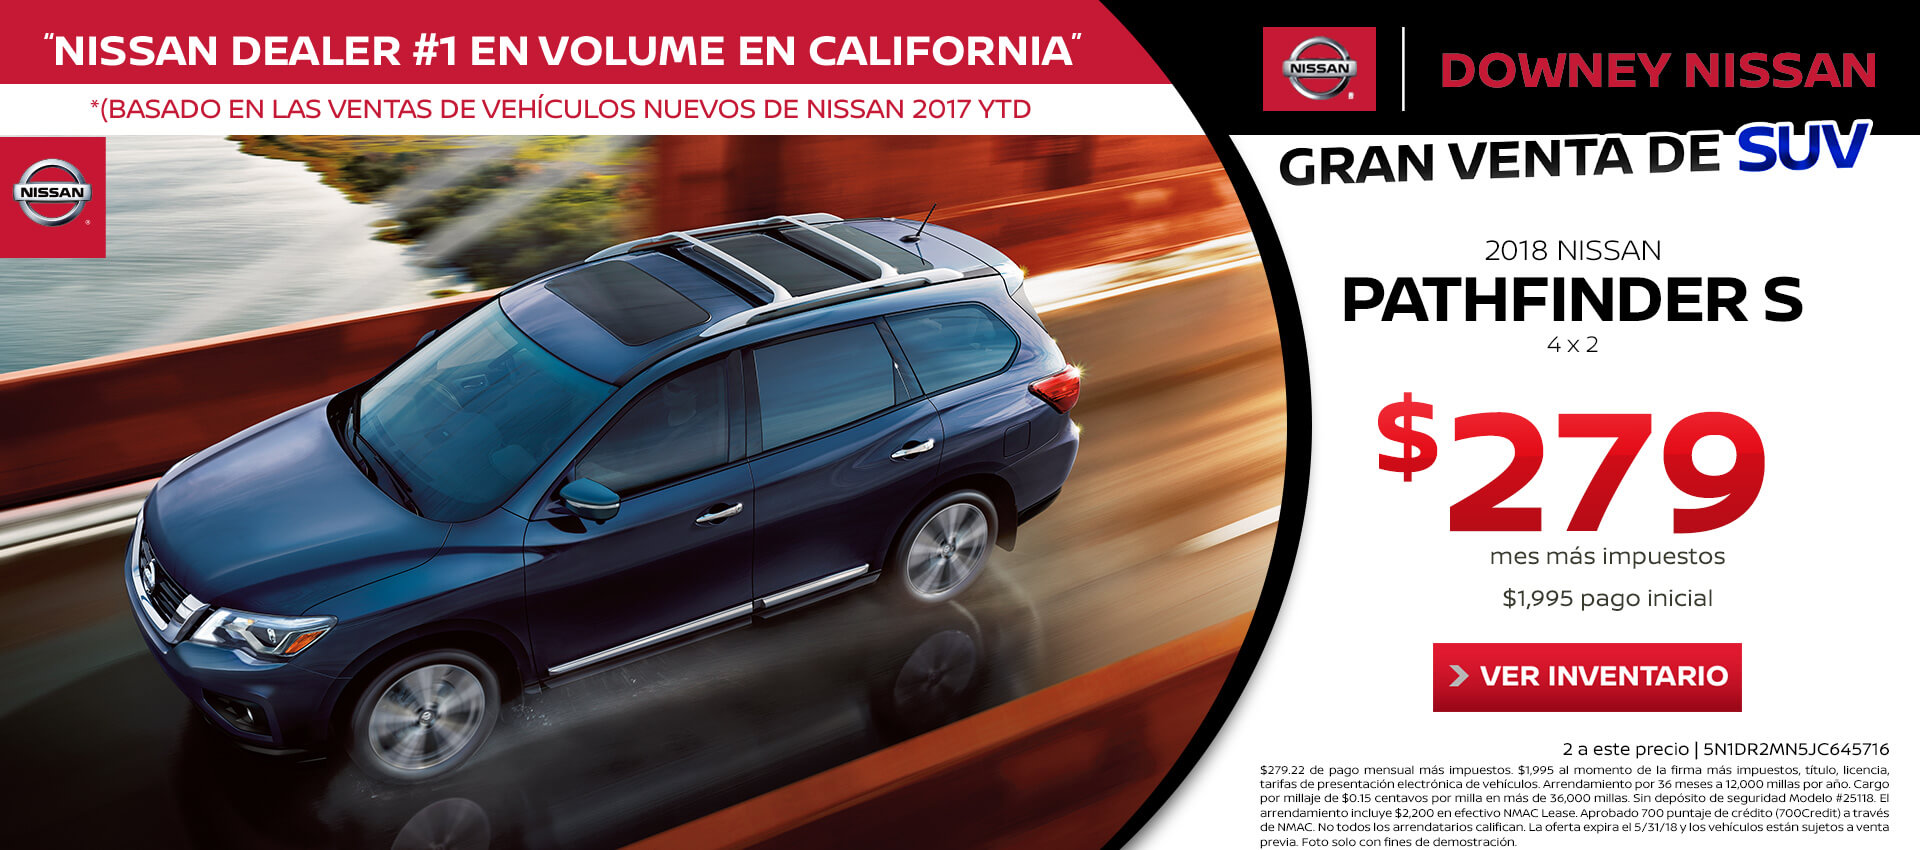 2018 Pathfinder Lease for $279